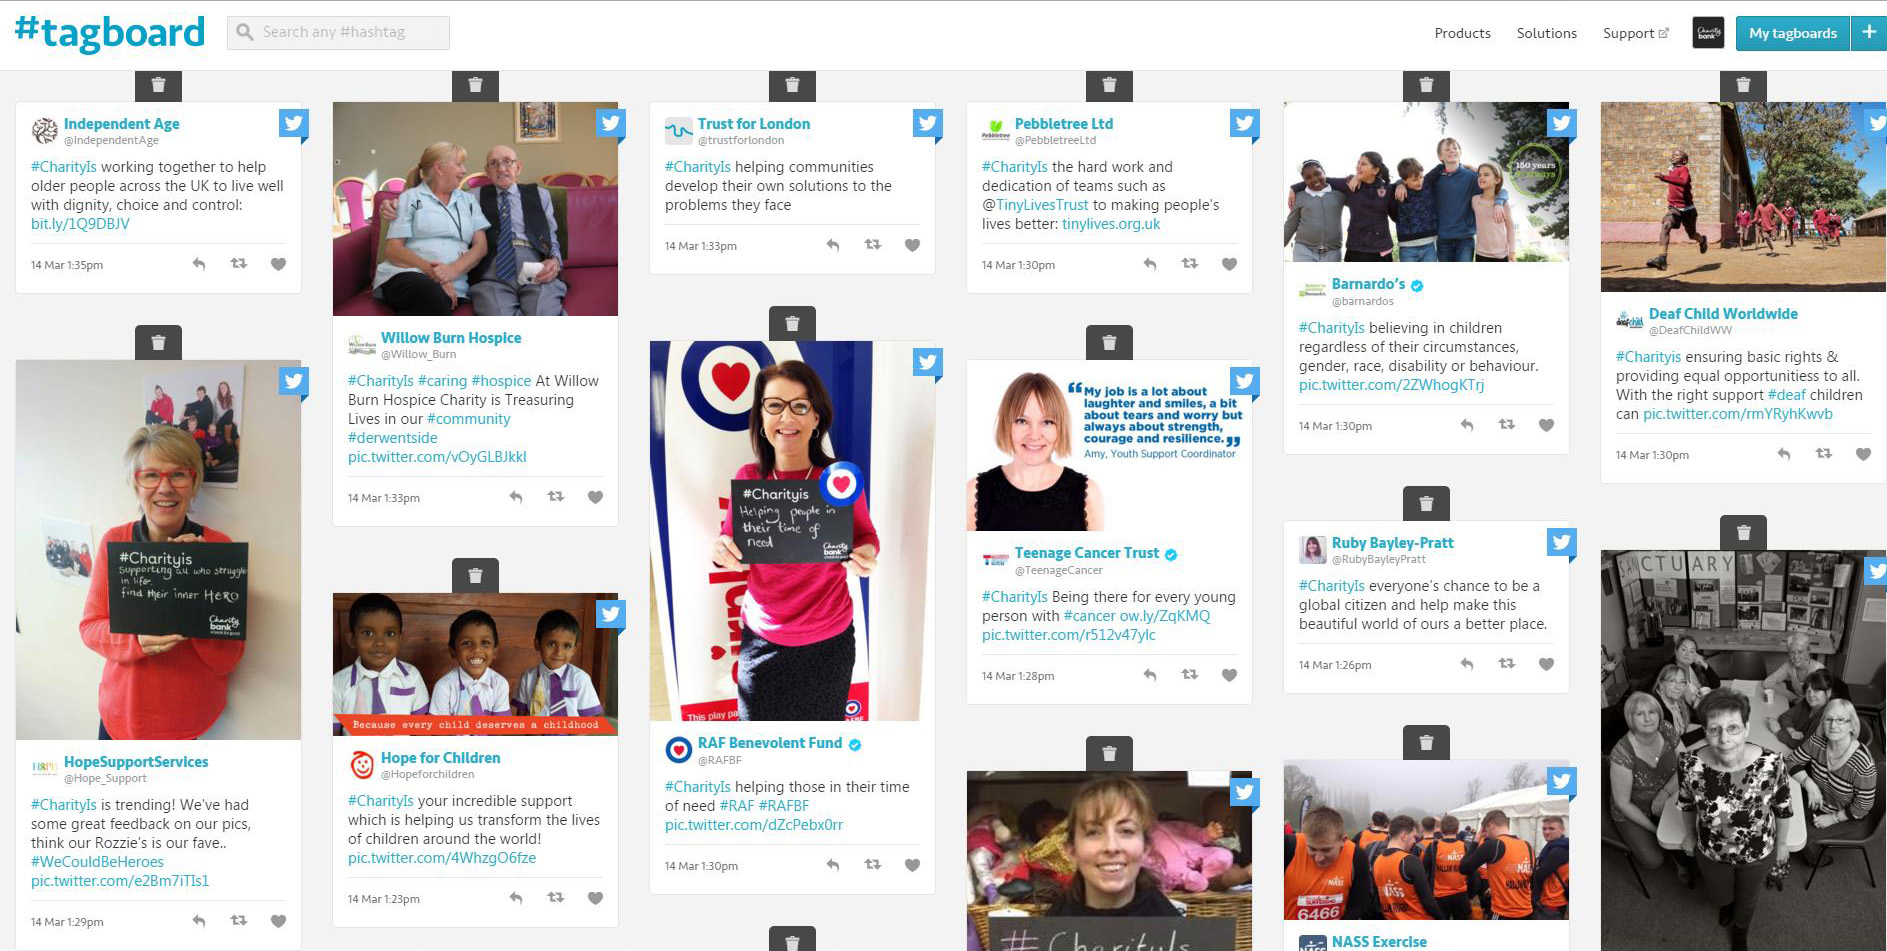 CharityIs-tagboard-snapshot-day-1